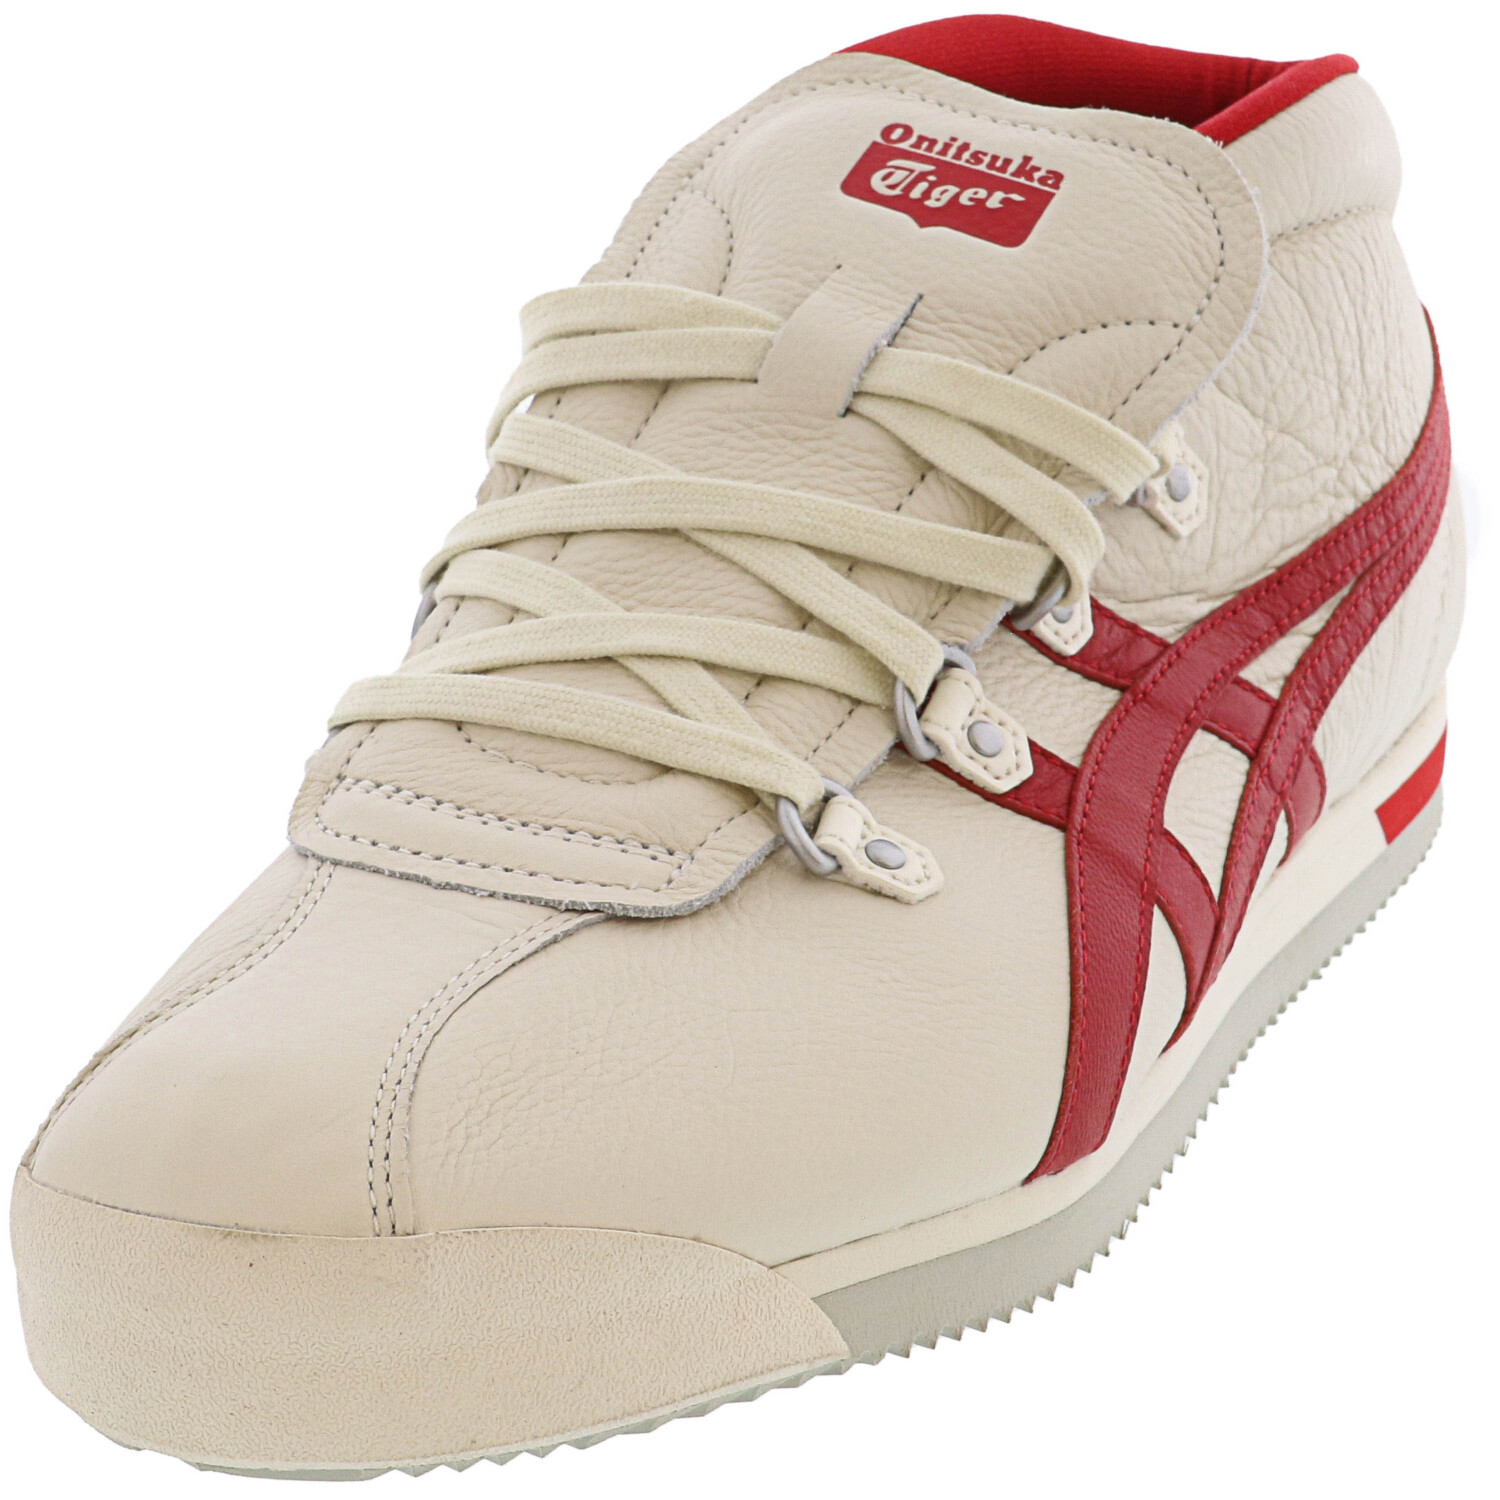 Onitsuka Tiger Men's Schanze 72 Cream / Classic Red Low Top Sneaker - 11.5M